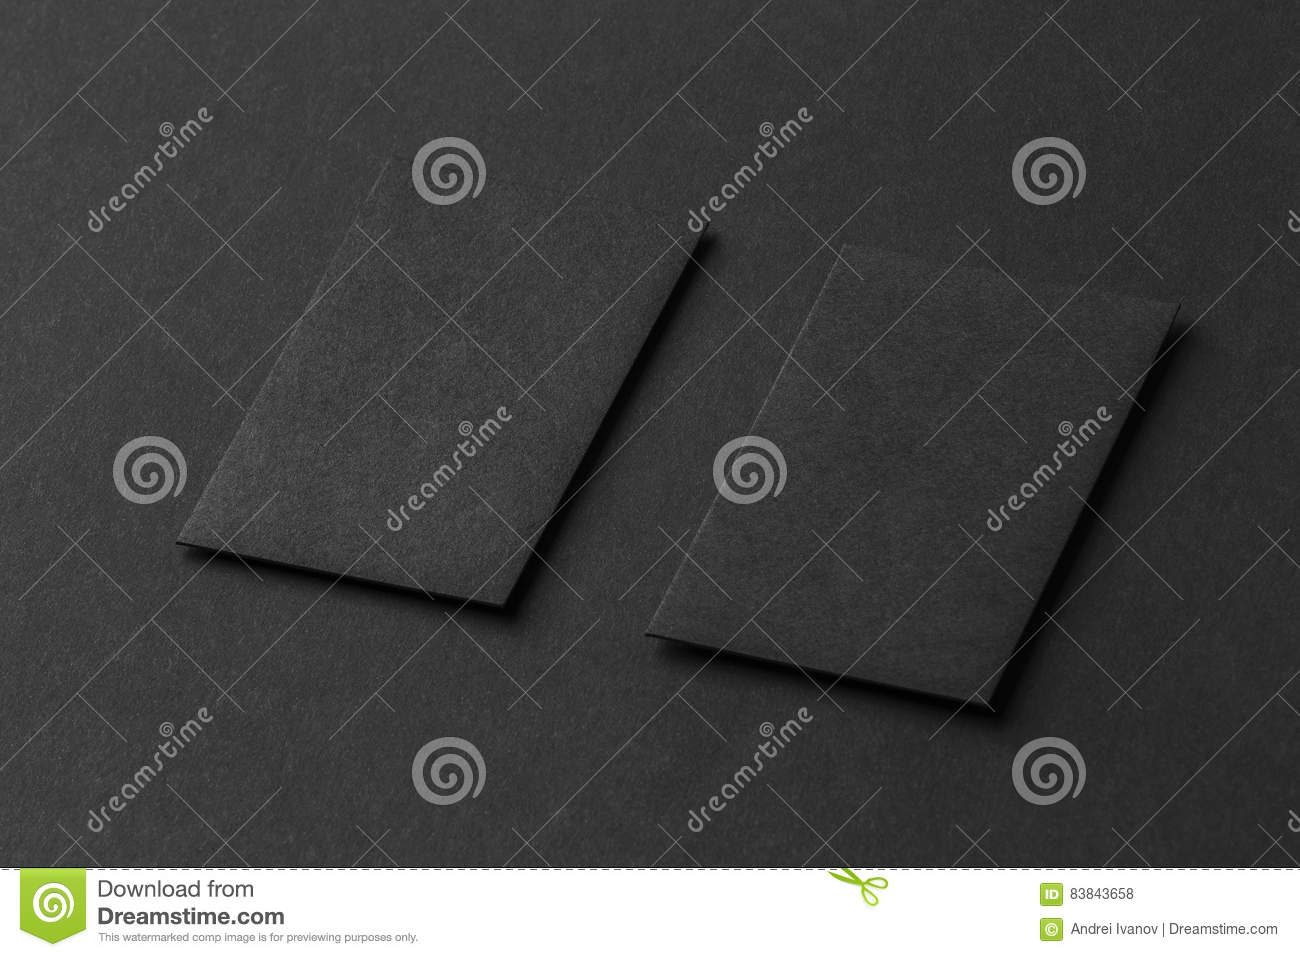 Mockup Of Two Vertical Business Cards At Black Textured Paper ...